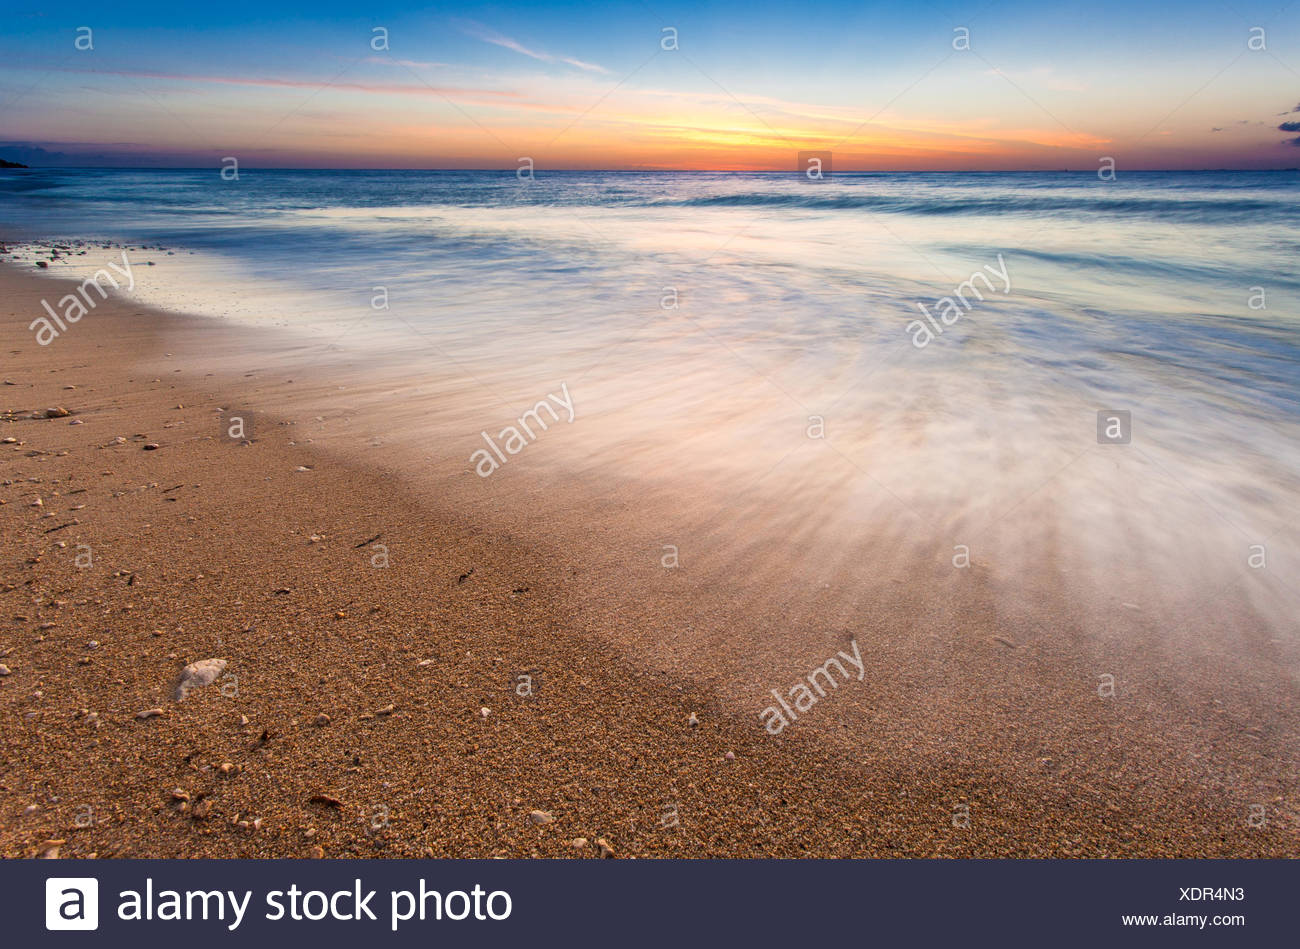 Scenic seascape - Stock Image